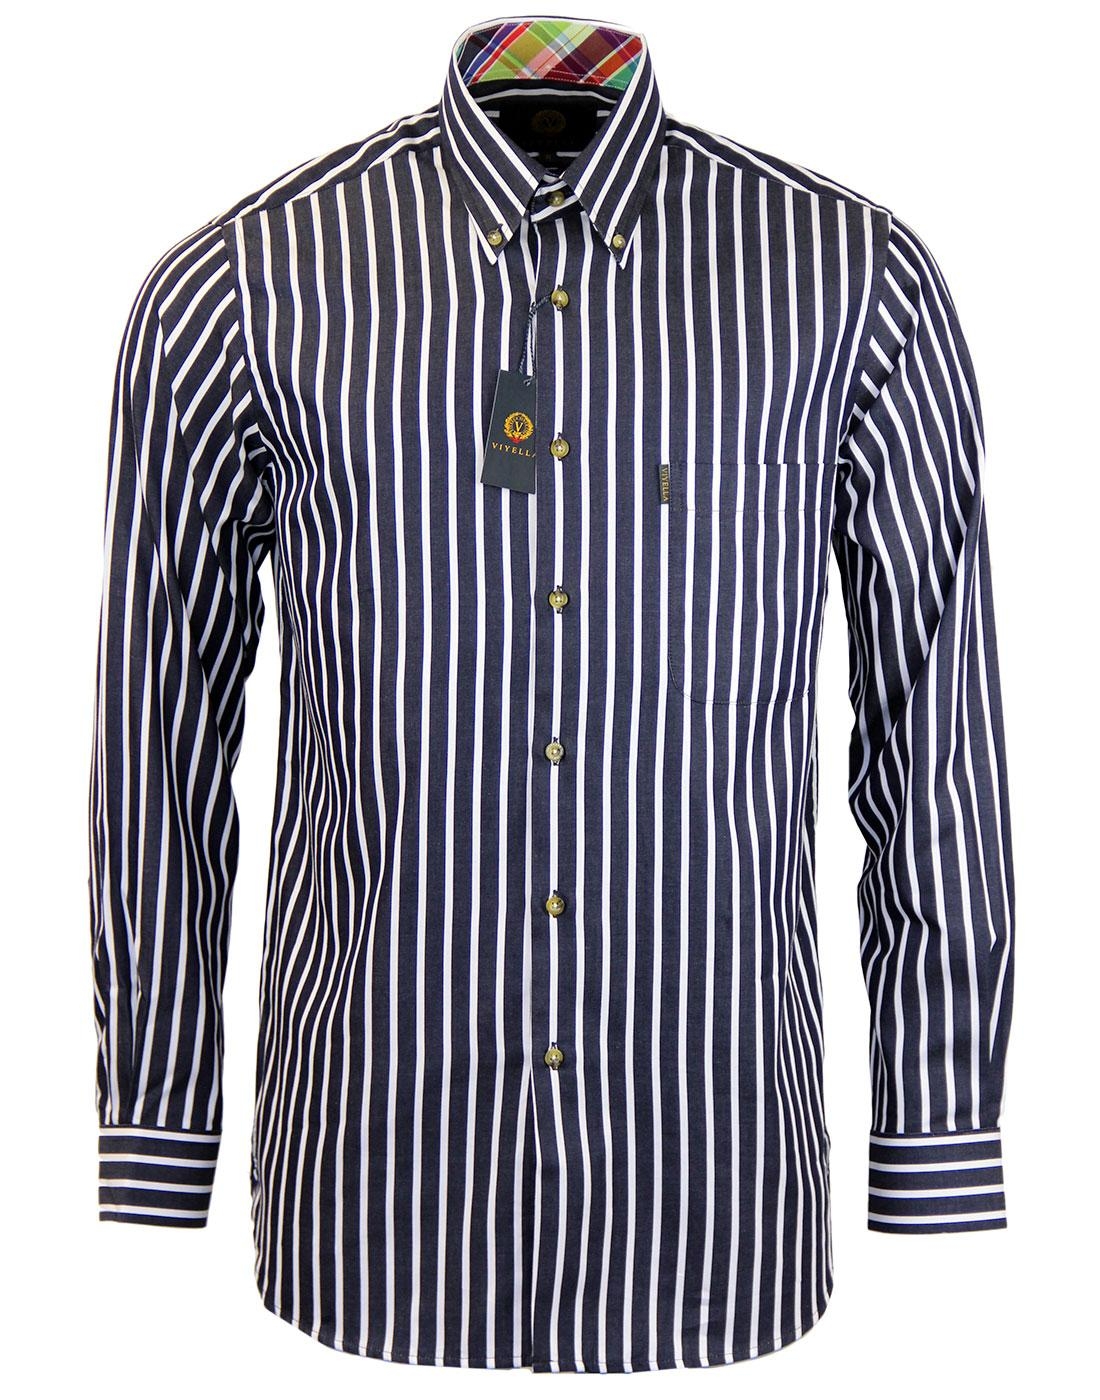 VIYELLA Retro Mod Breton Stripe Button Down Shirt